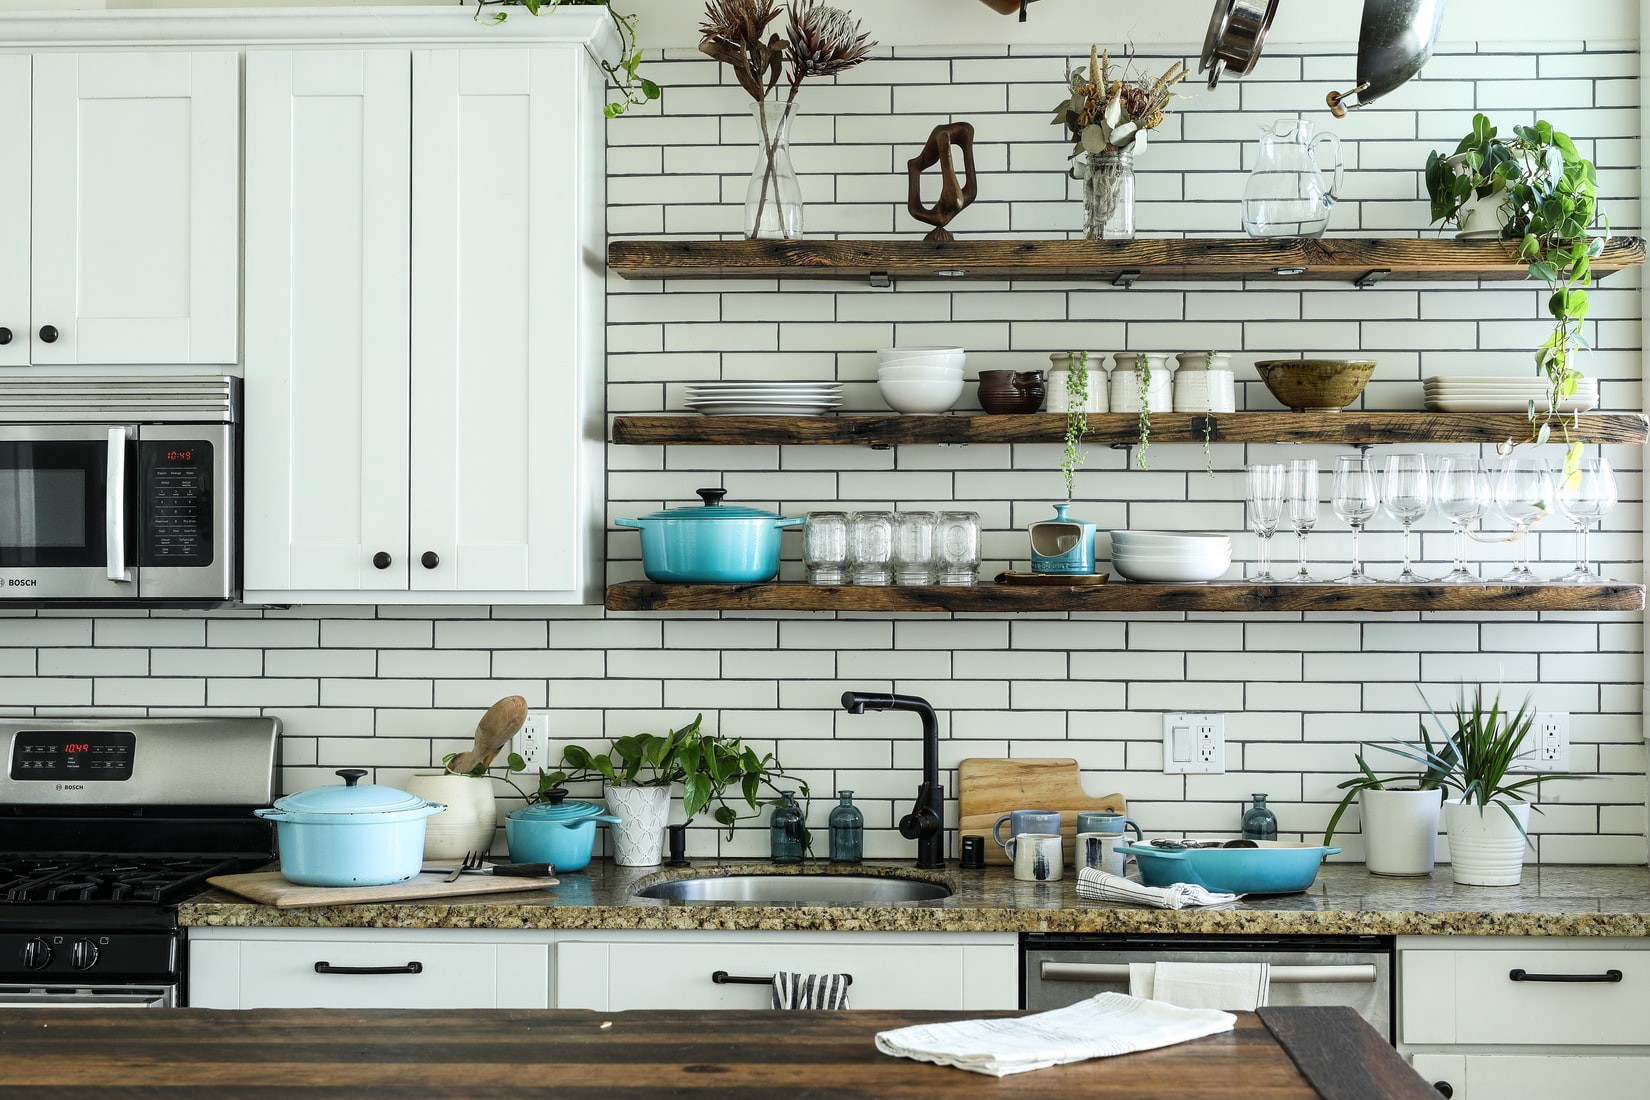 A Guide To A Zero Waste Kitchen Take A Peek Into A No Waste Kitchen By Cheeky Marina The Sustainability X Magazine